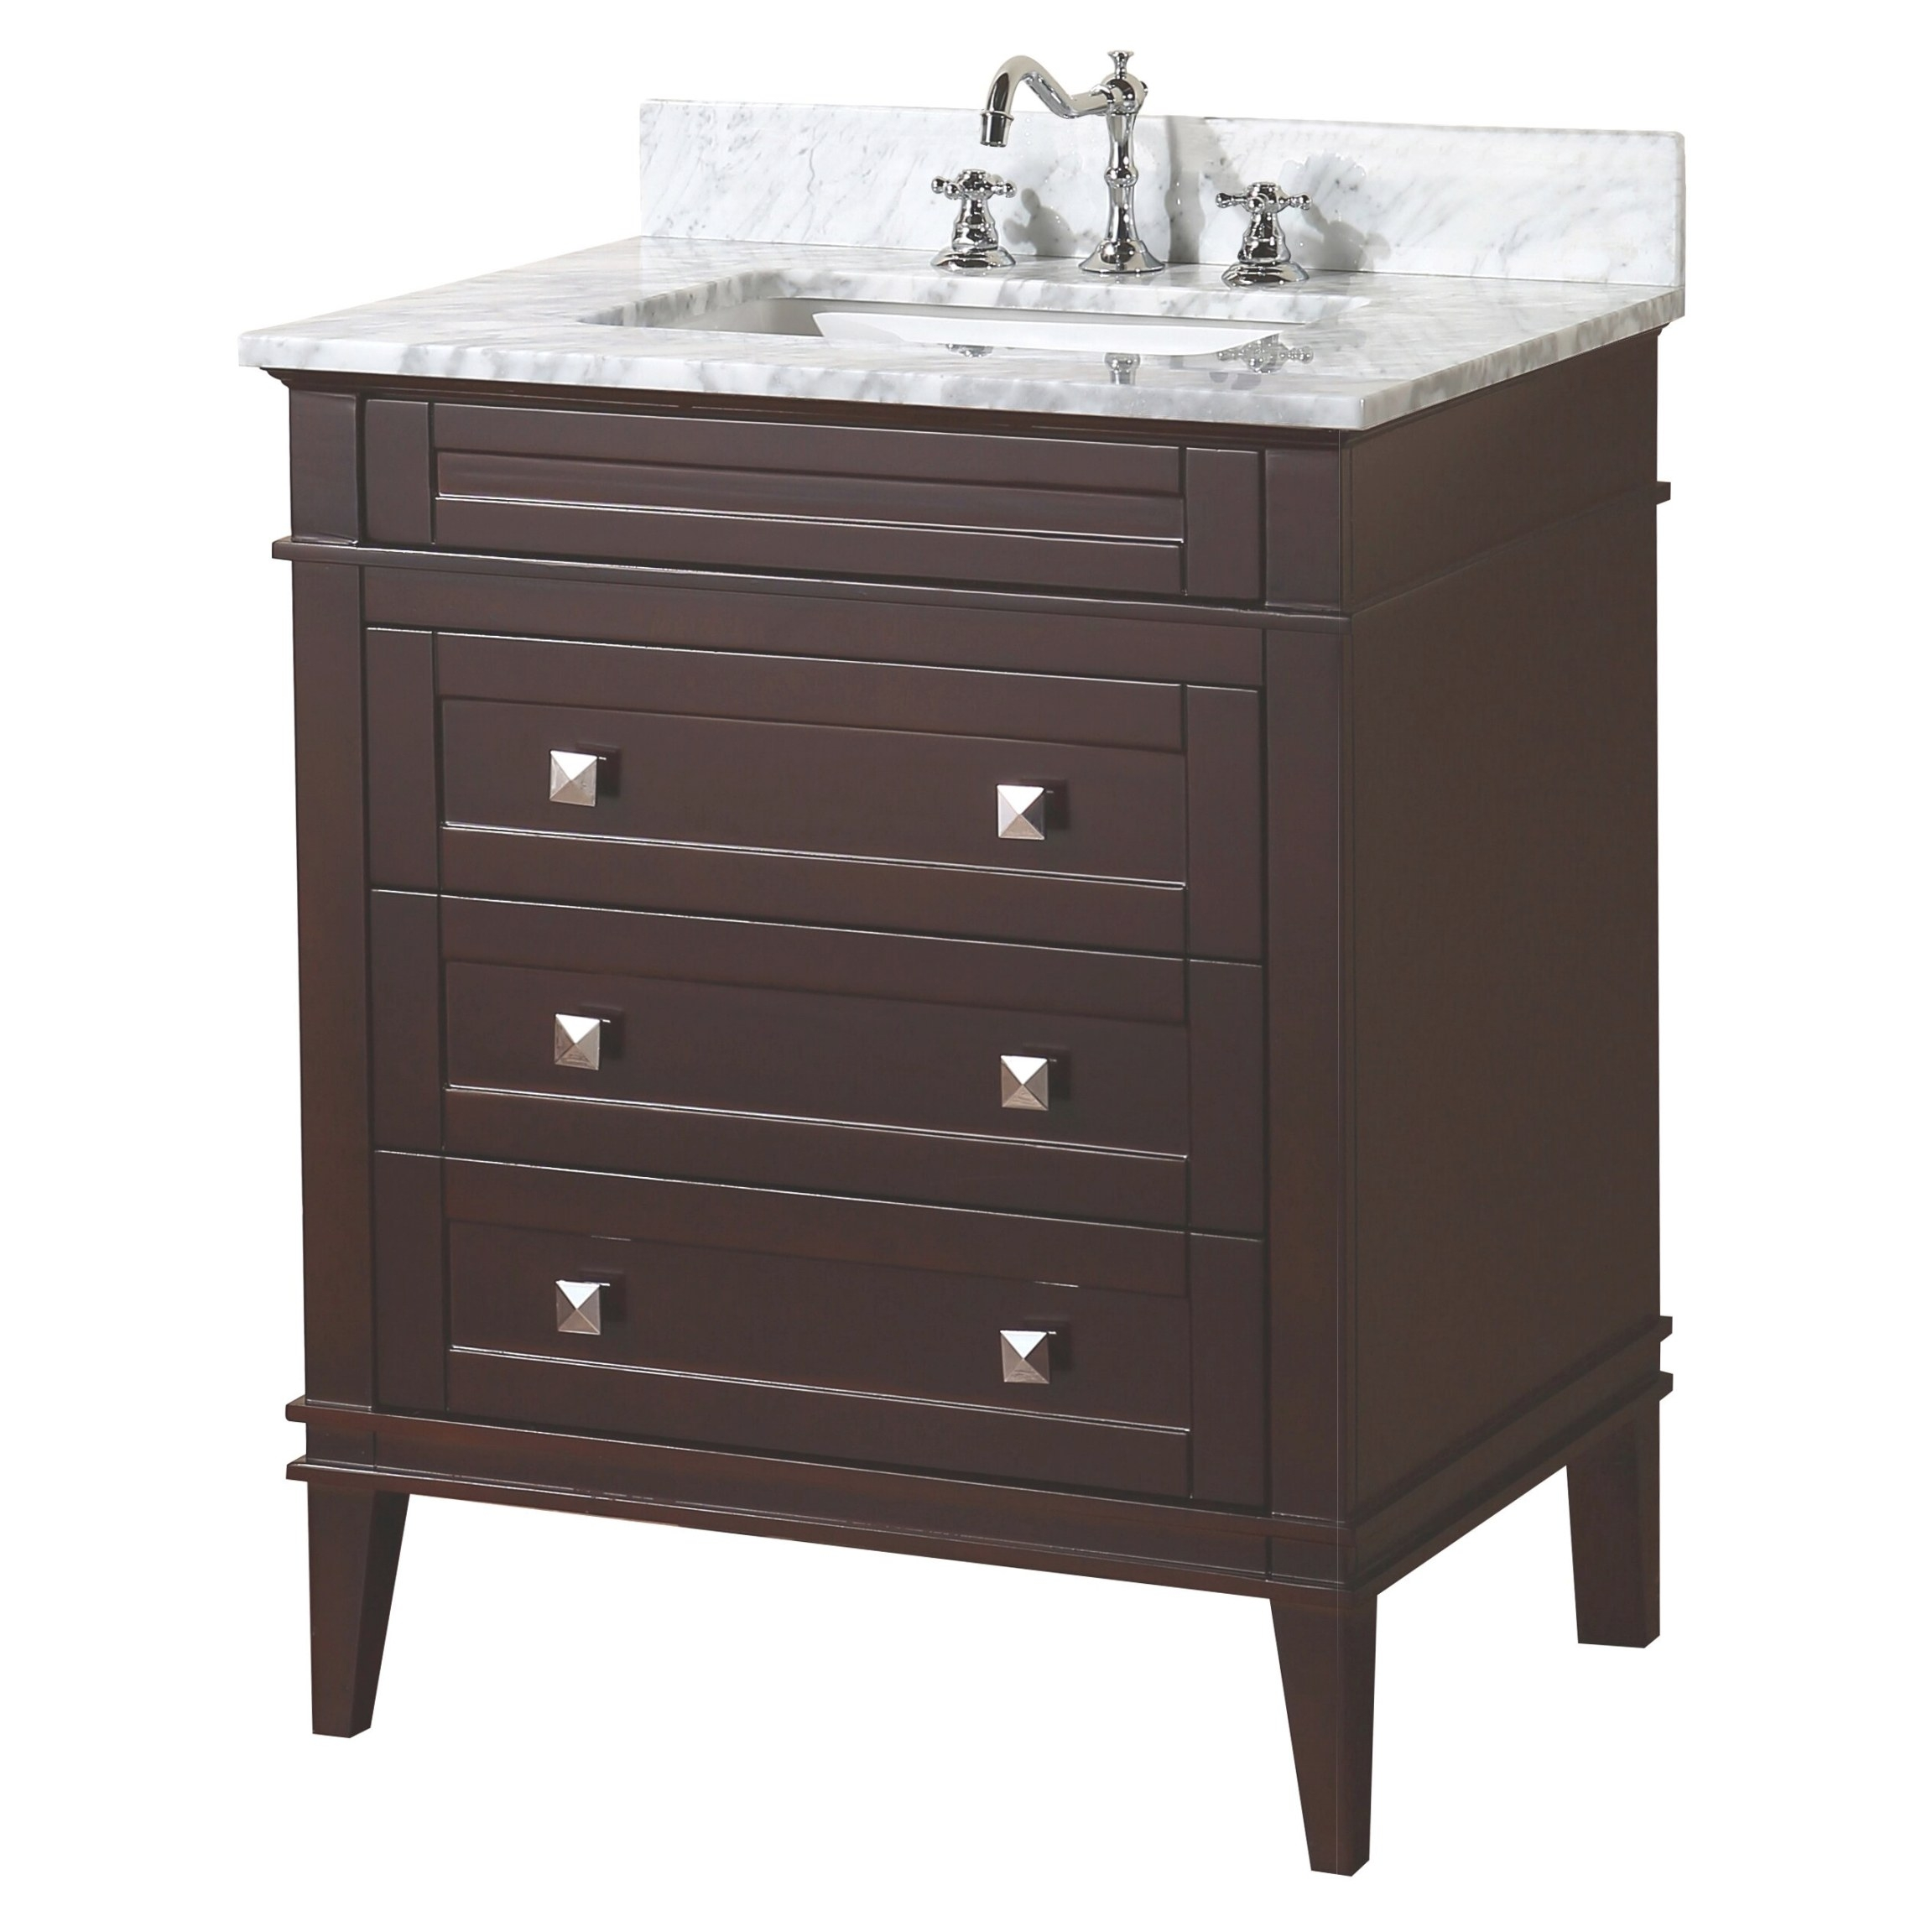 "Kbc Eleanor 30"" Single Bathroom Vanity Set & Reviews 